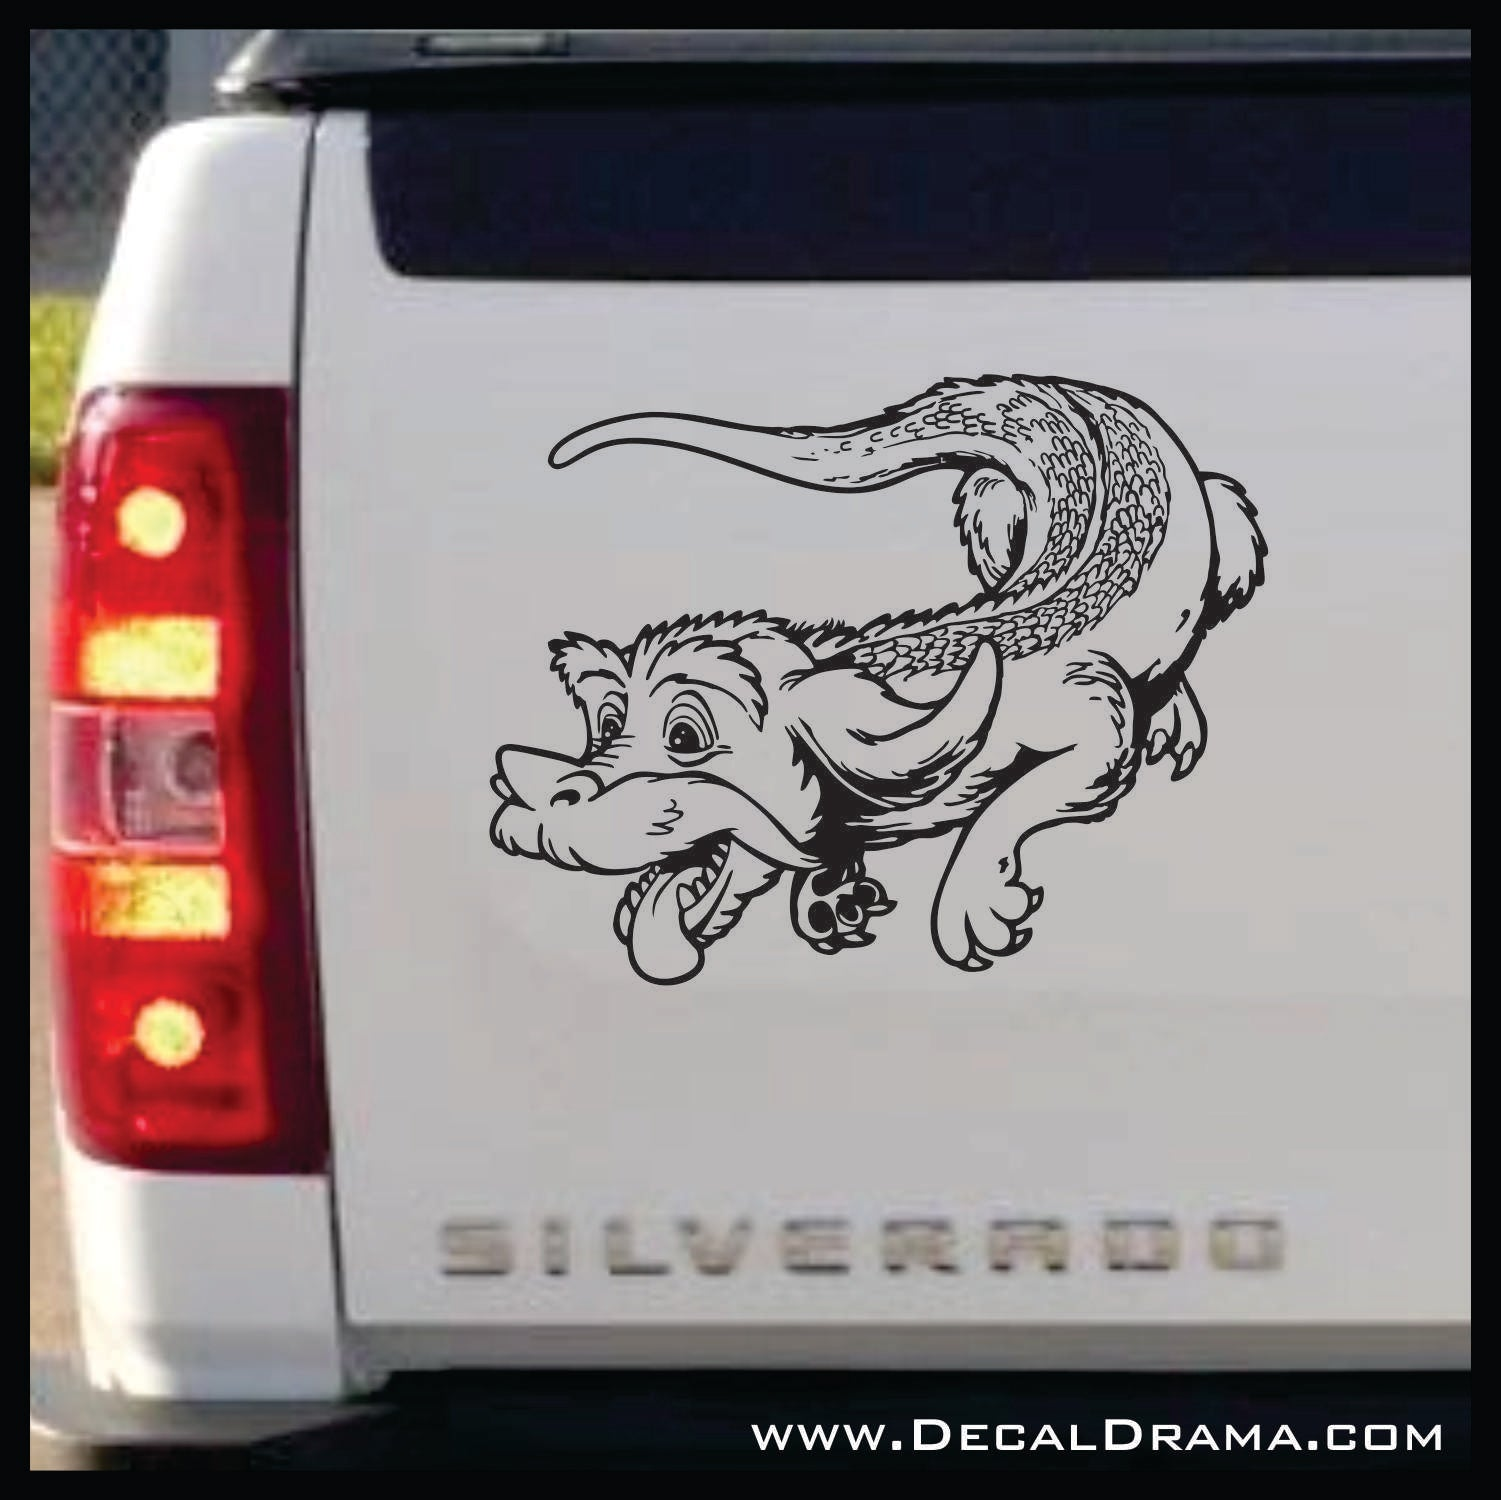 Falkor the Luck Dragon, Never Ending Story-inspired Fan Art Vinyl Car/Laptop Decal